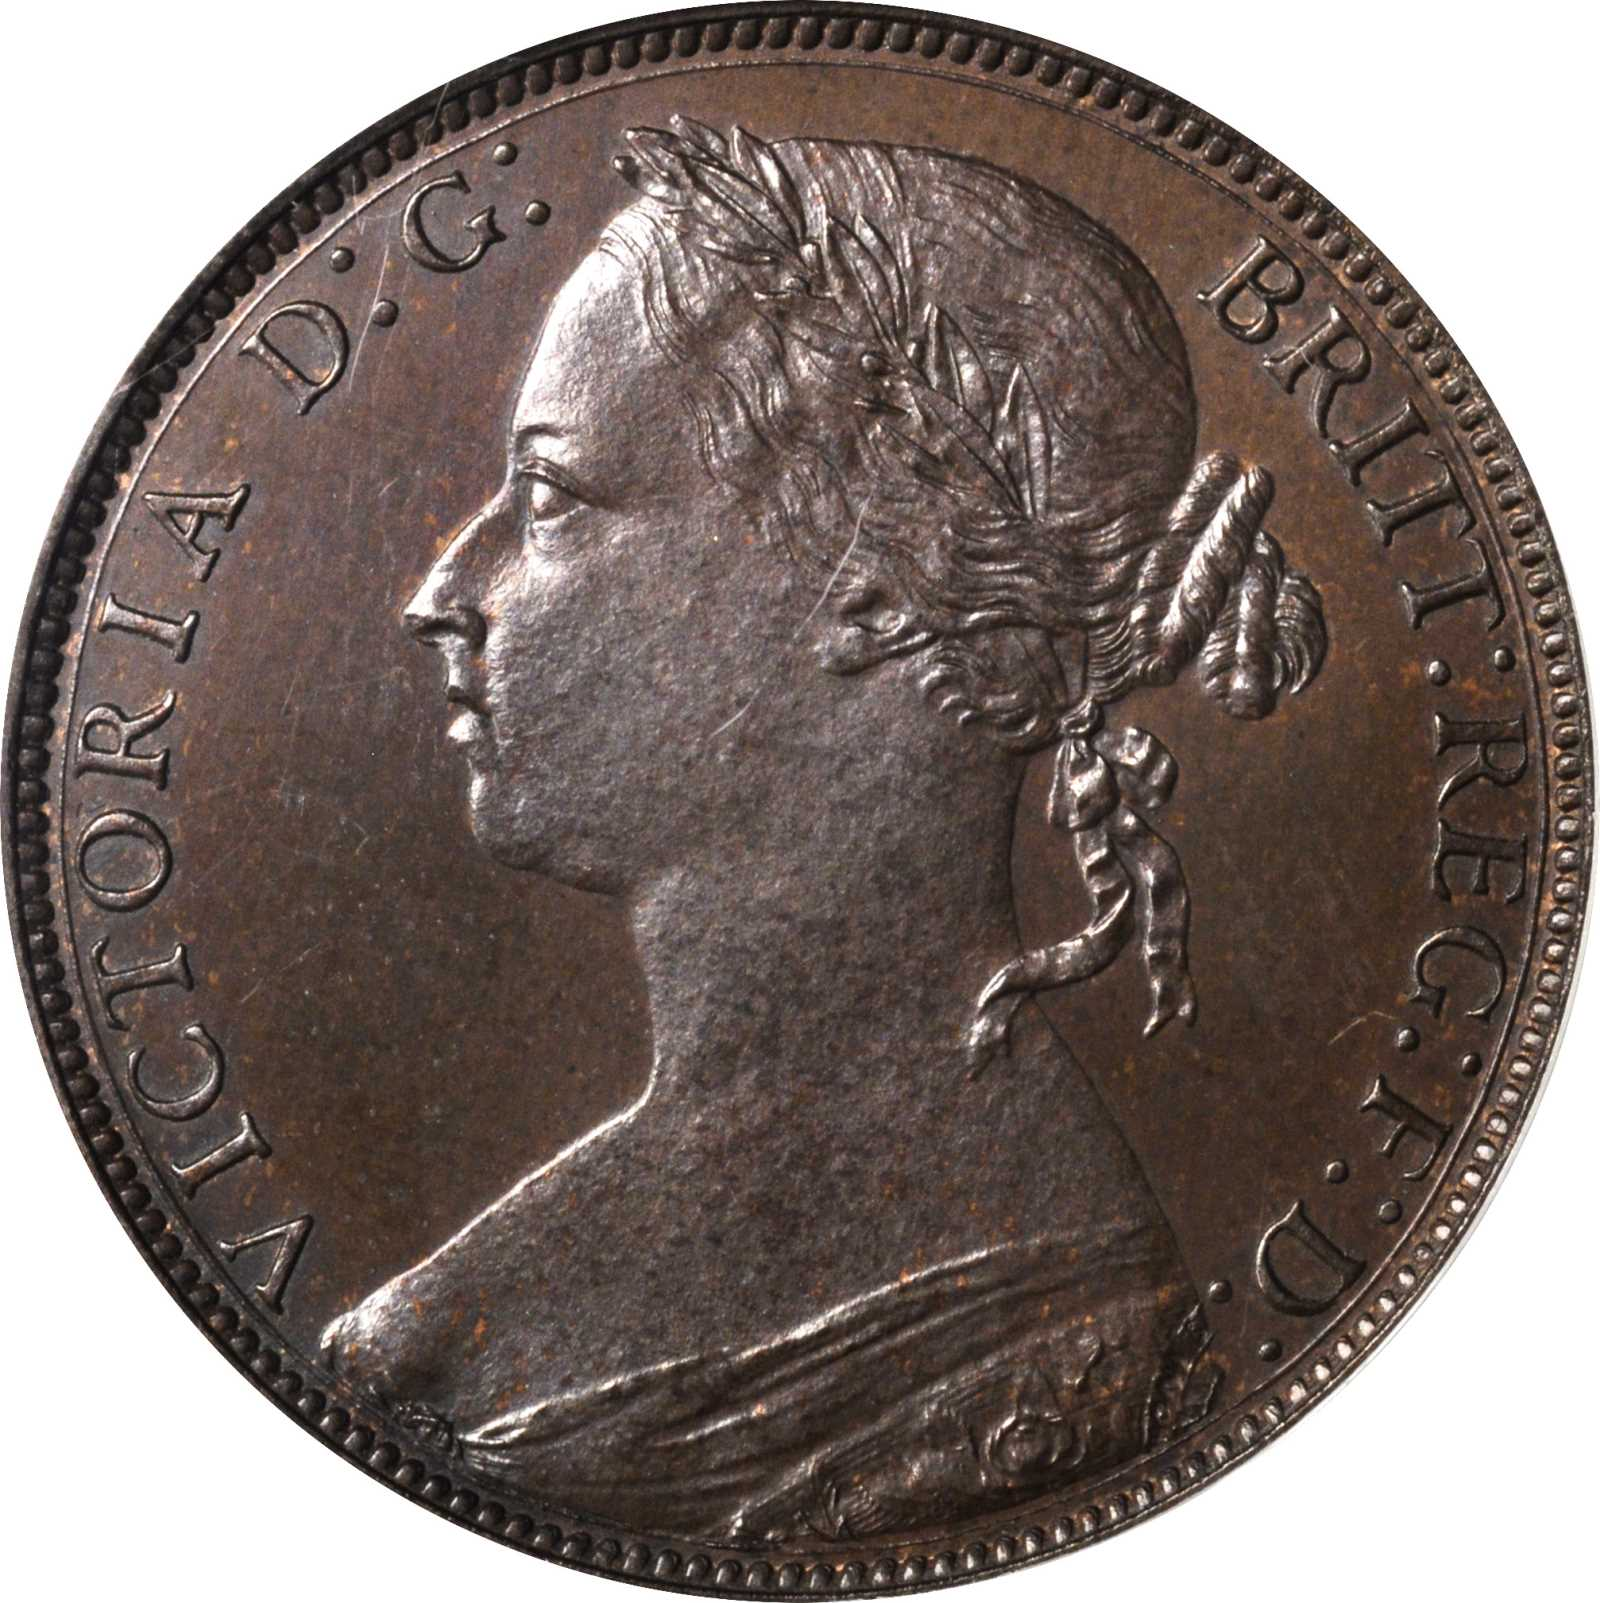 Penny (Britannia, third design): Photo Great Britain 1882-H penny